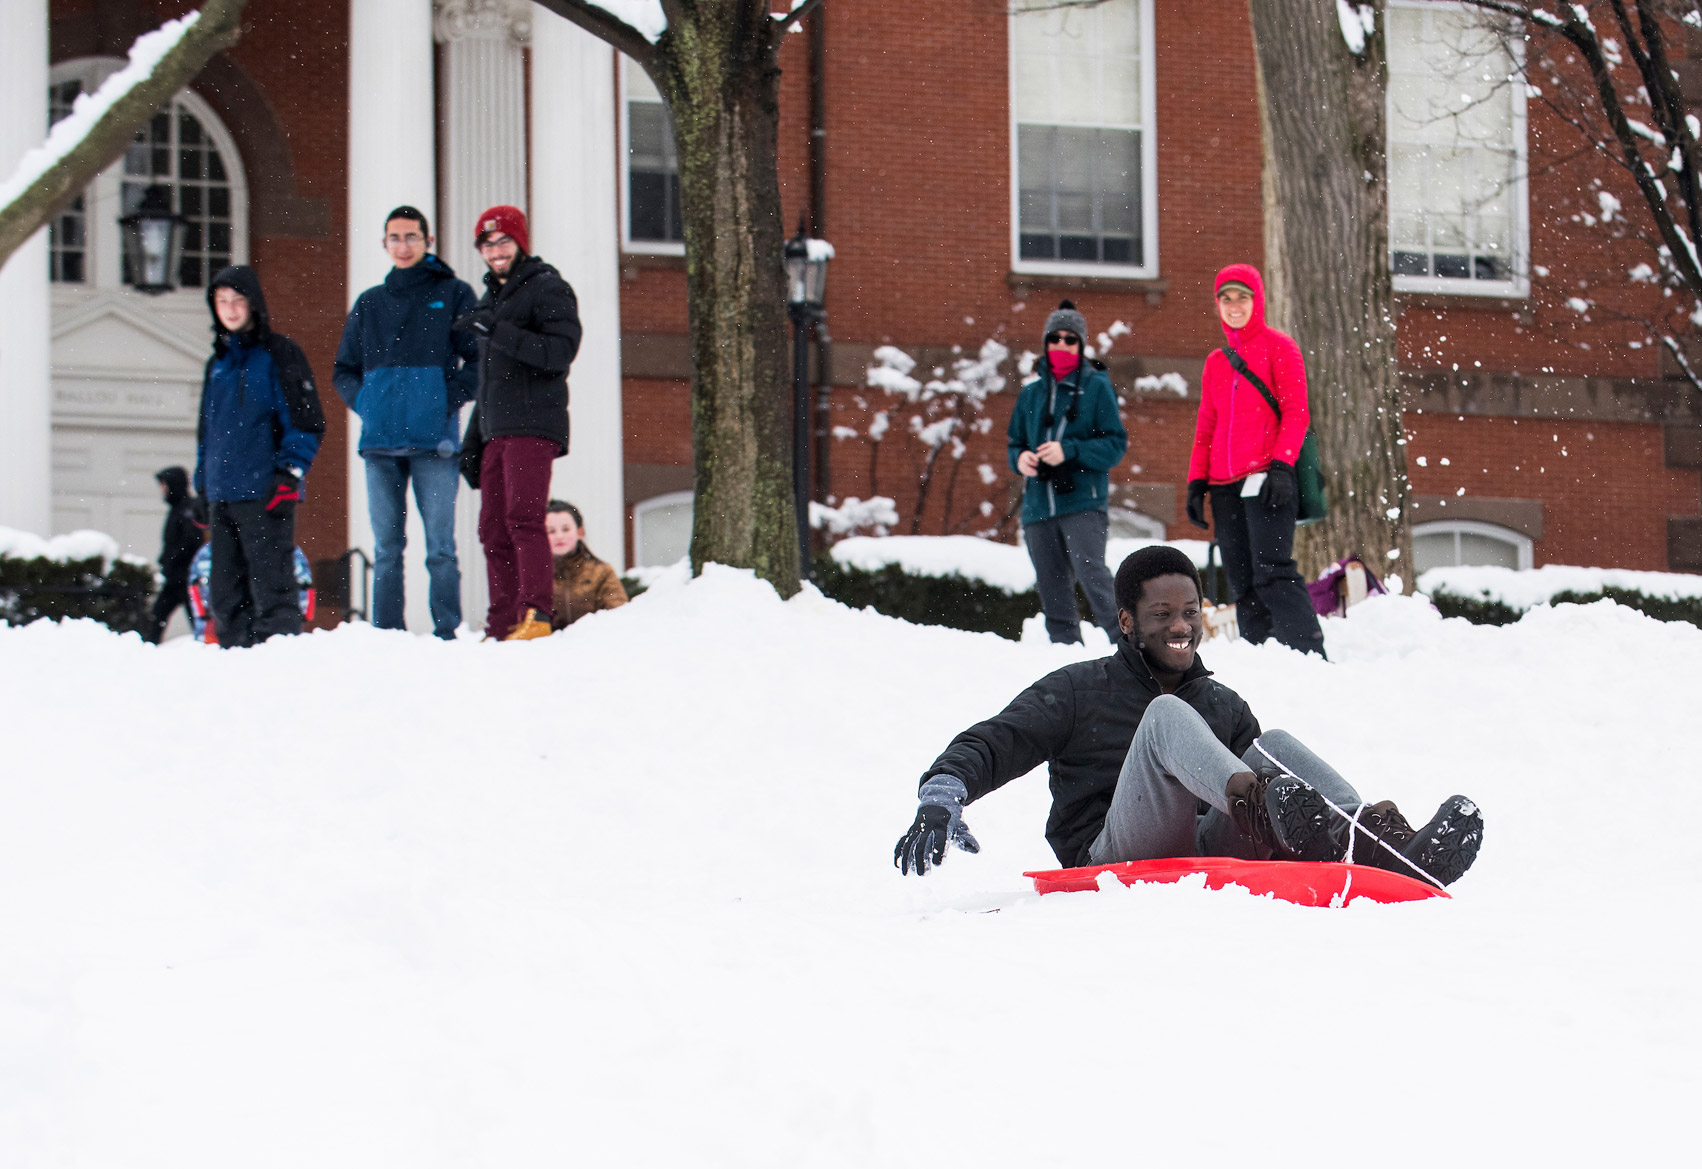 Sledding during winter term at Tufts